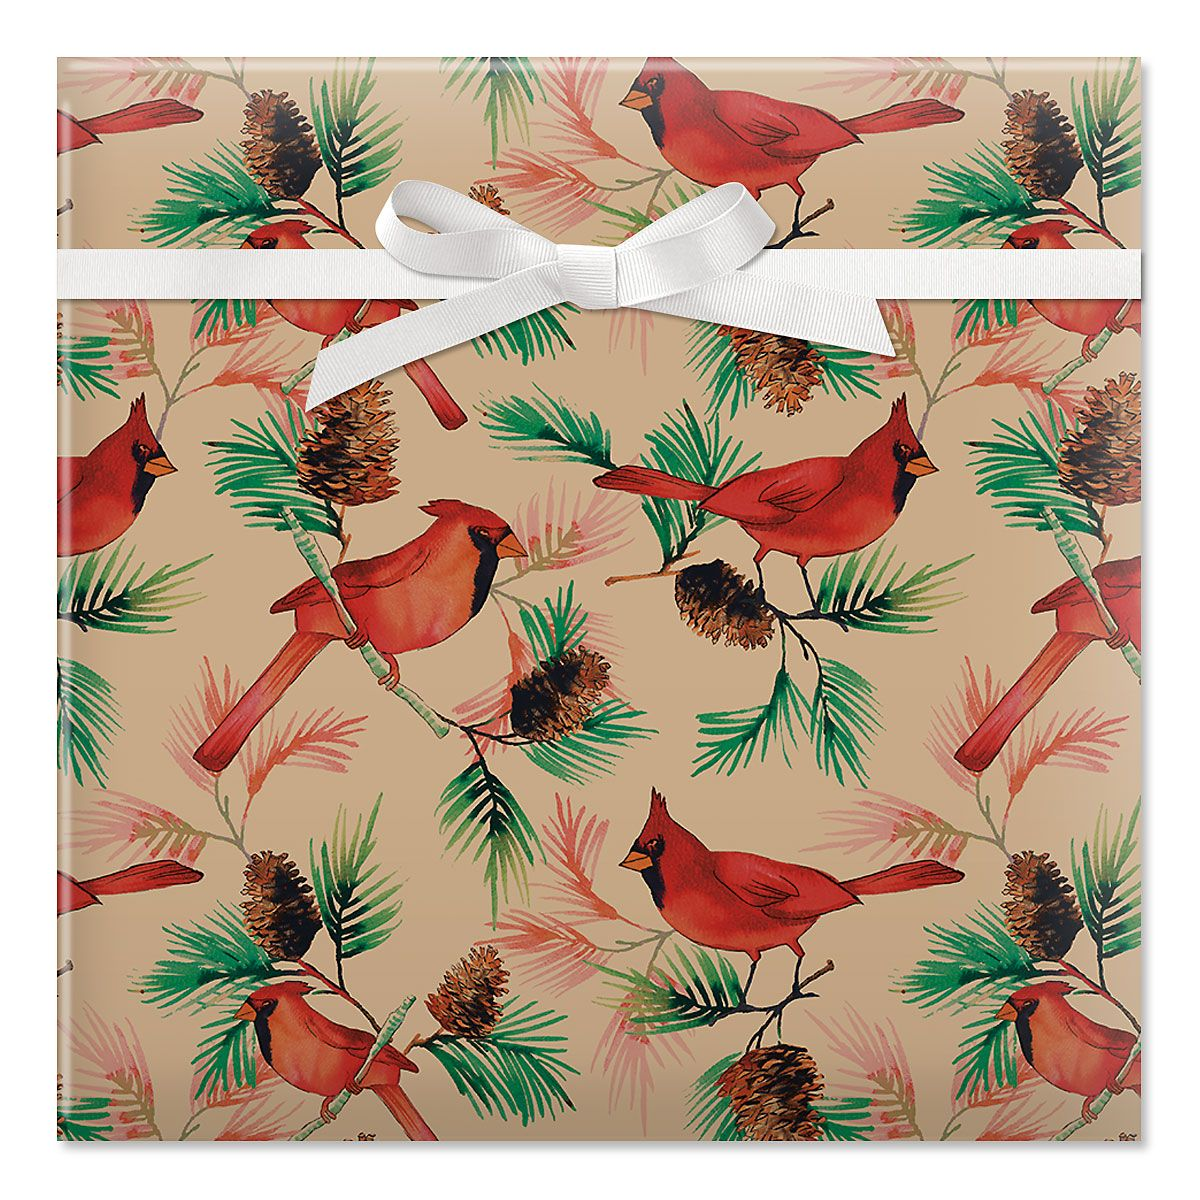 Christmas Cardinals  Jumbo Rolled Gift Wrap